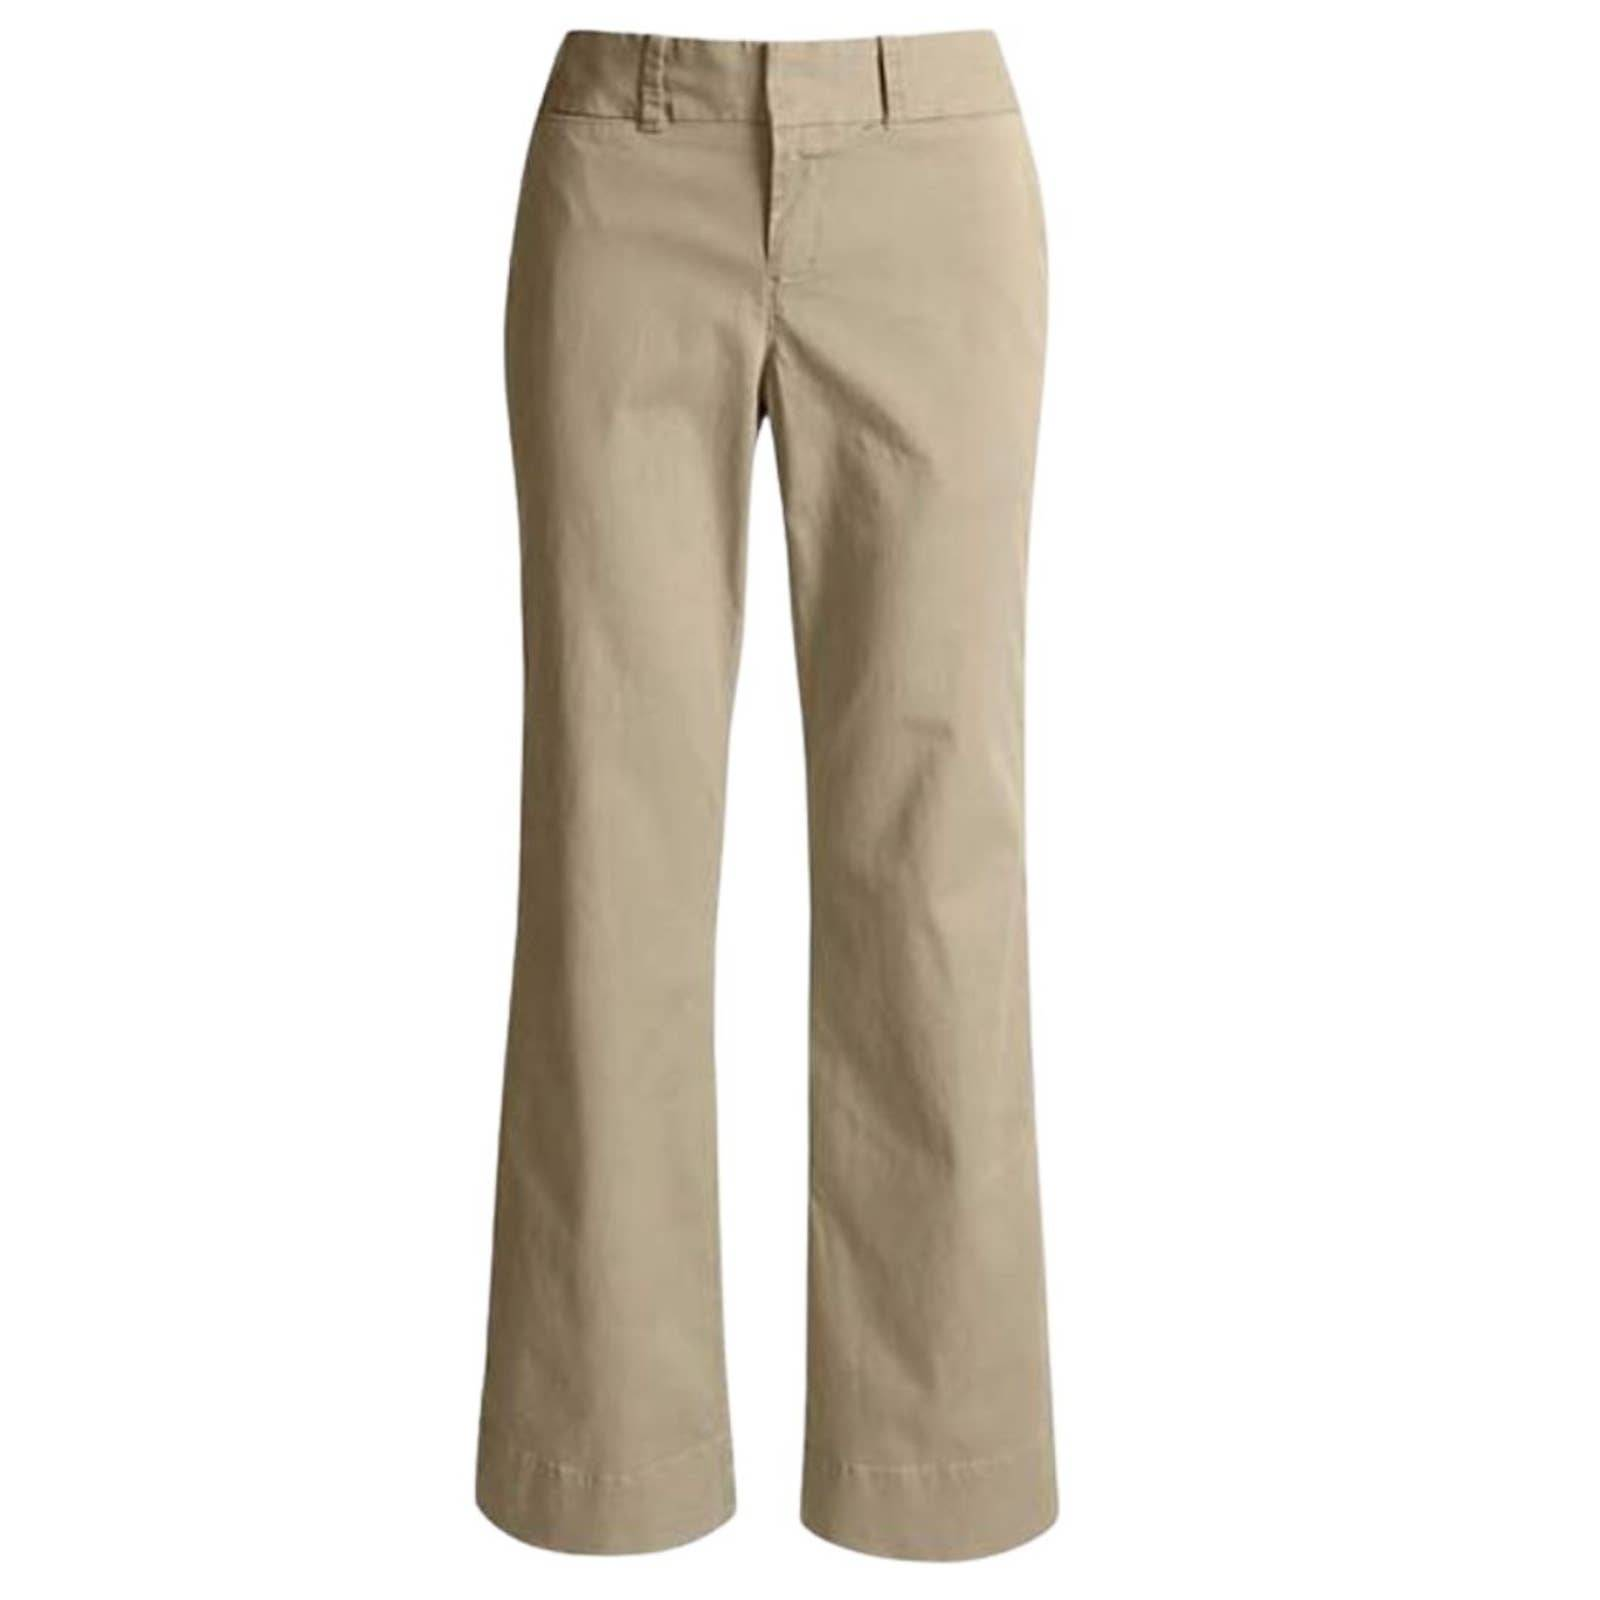 Dockers Plain Boot Cut Chino Pants 8